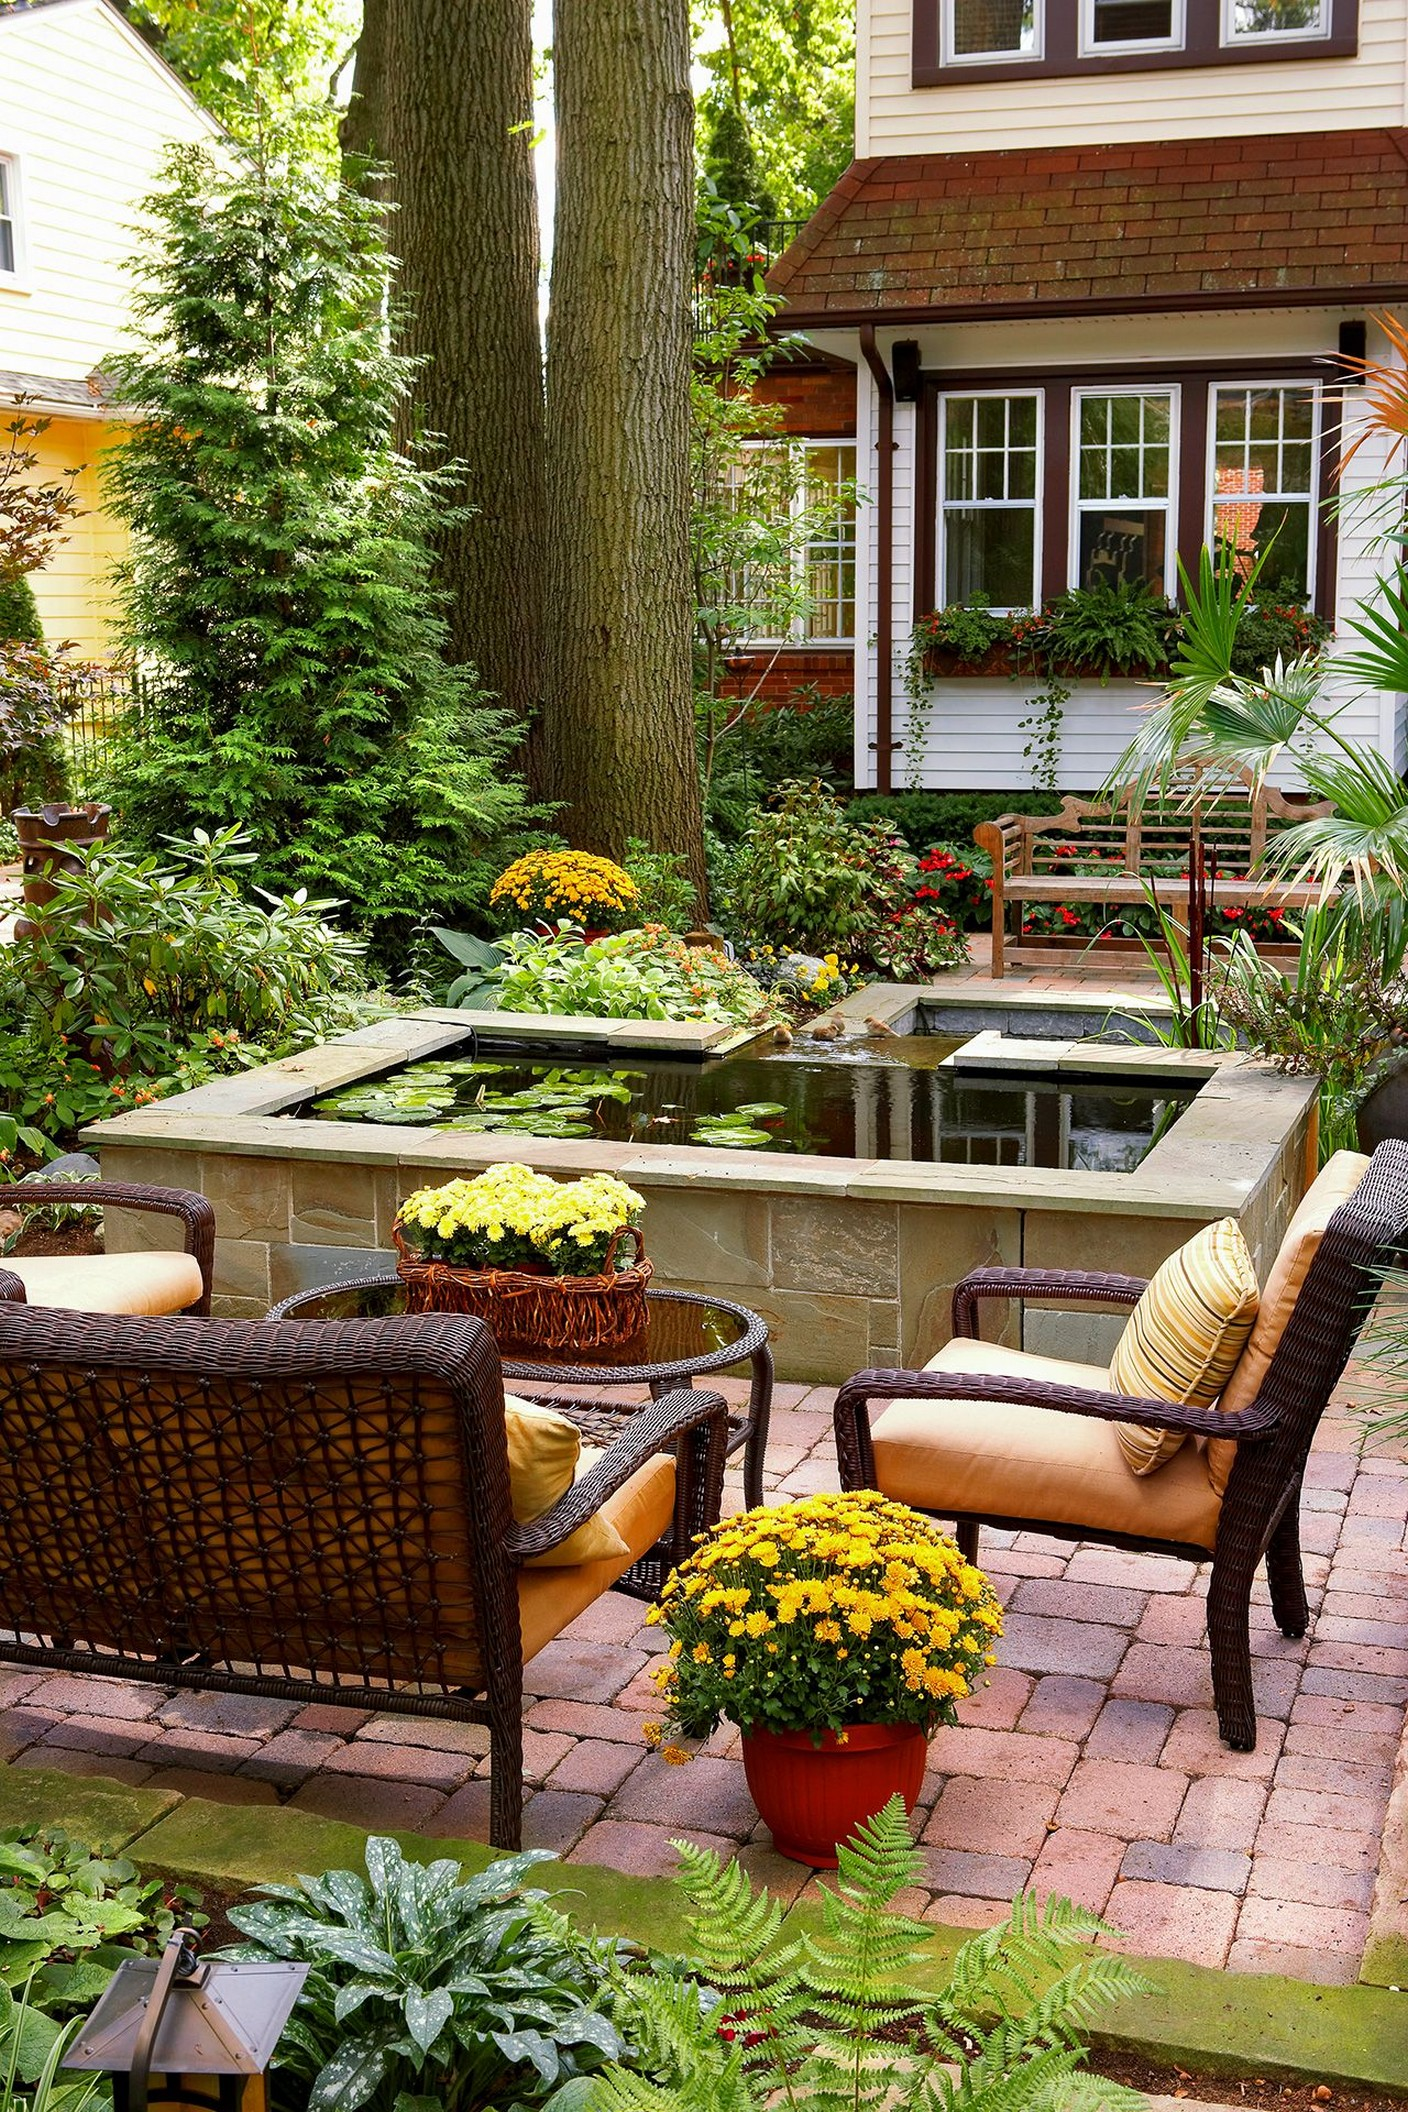 82 Five Great Backyard Landscaping Ideas Home Decor 70